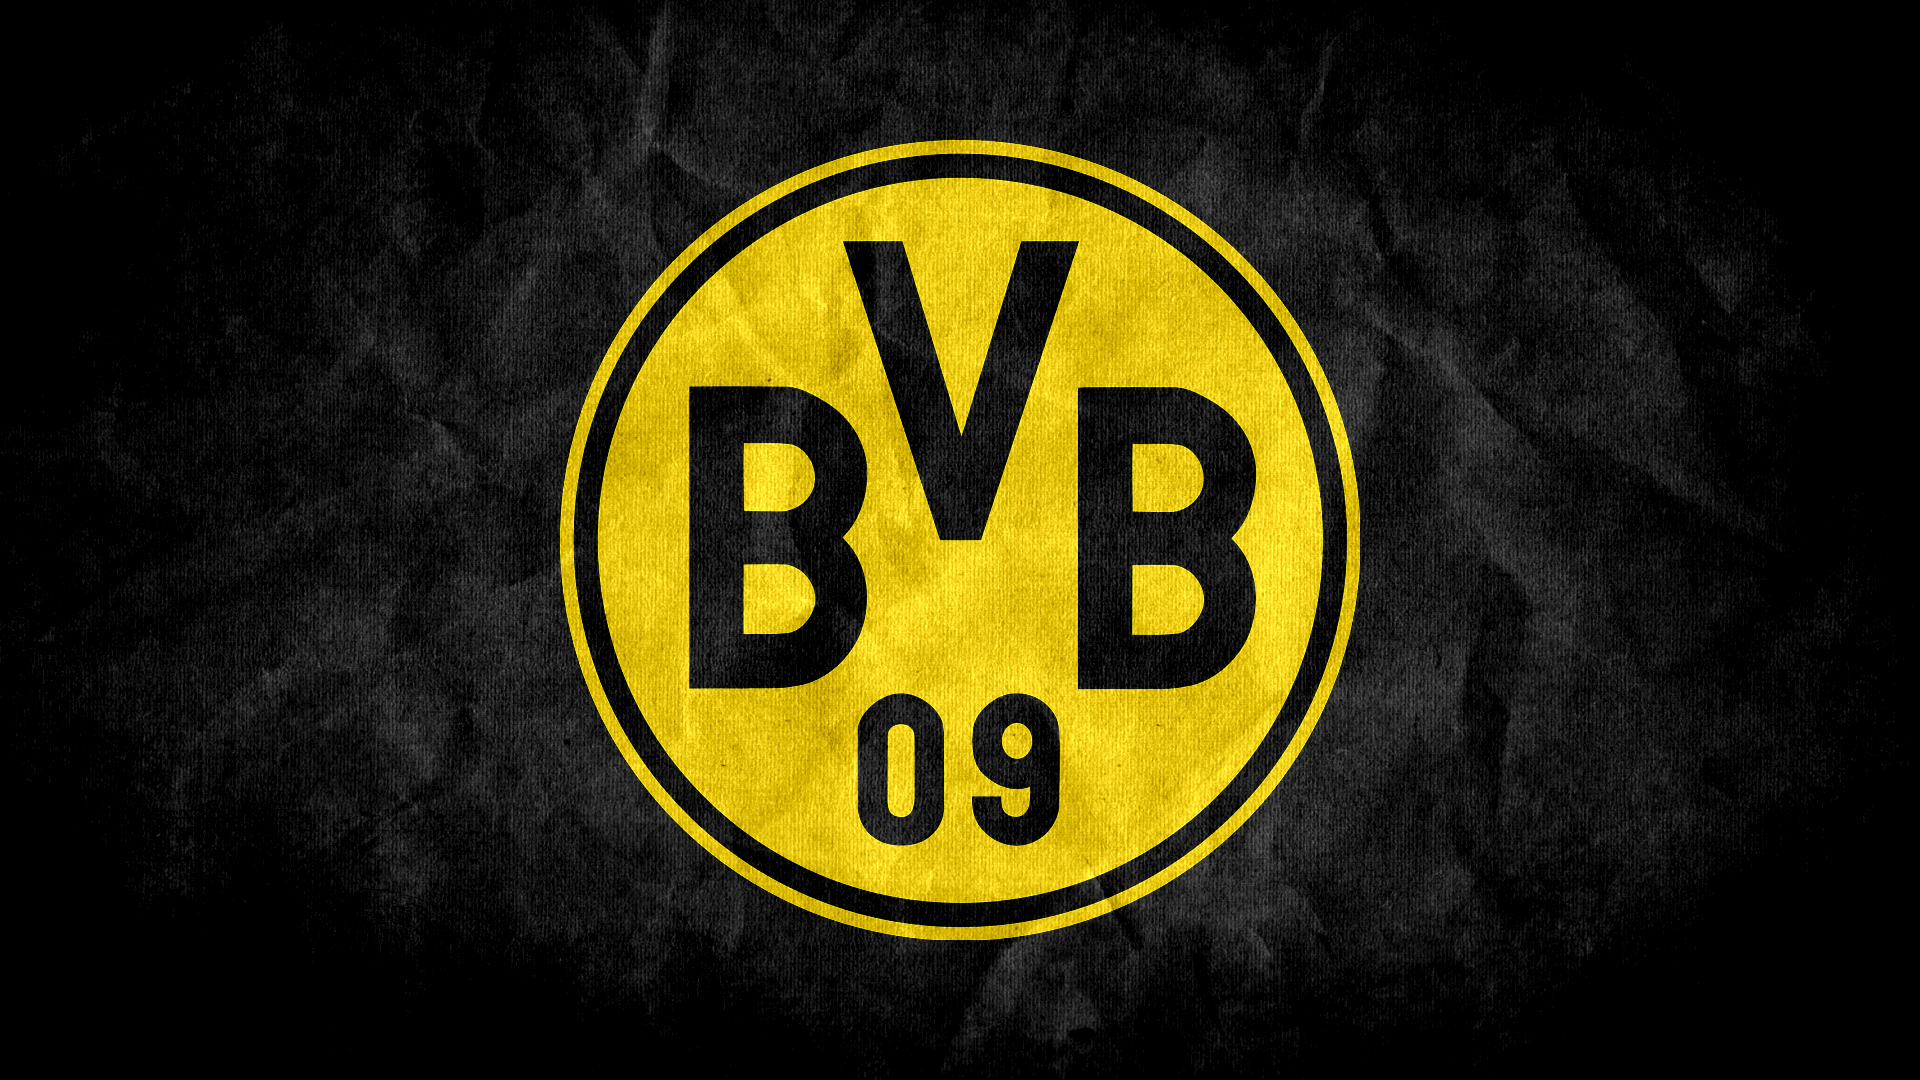 BVB Dortmund Logo post under Dortmund Wallpaper HD. We have many borussia dortmund Football Club free wallpaper hd. BVB Dortmund Logo was upload on May 19, ...